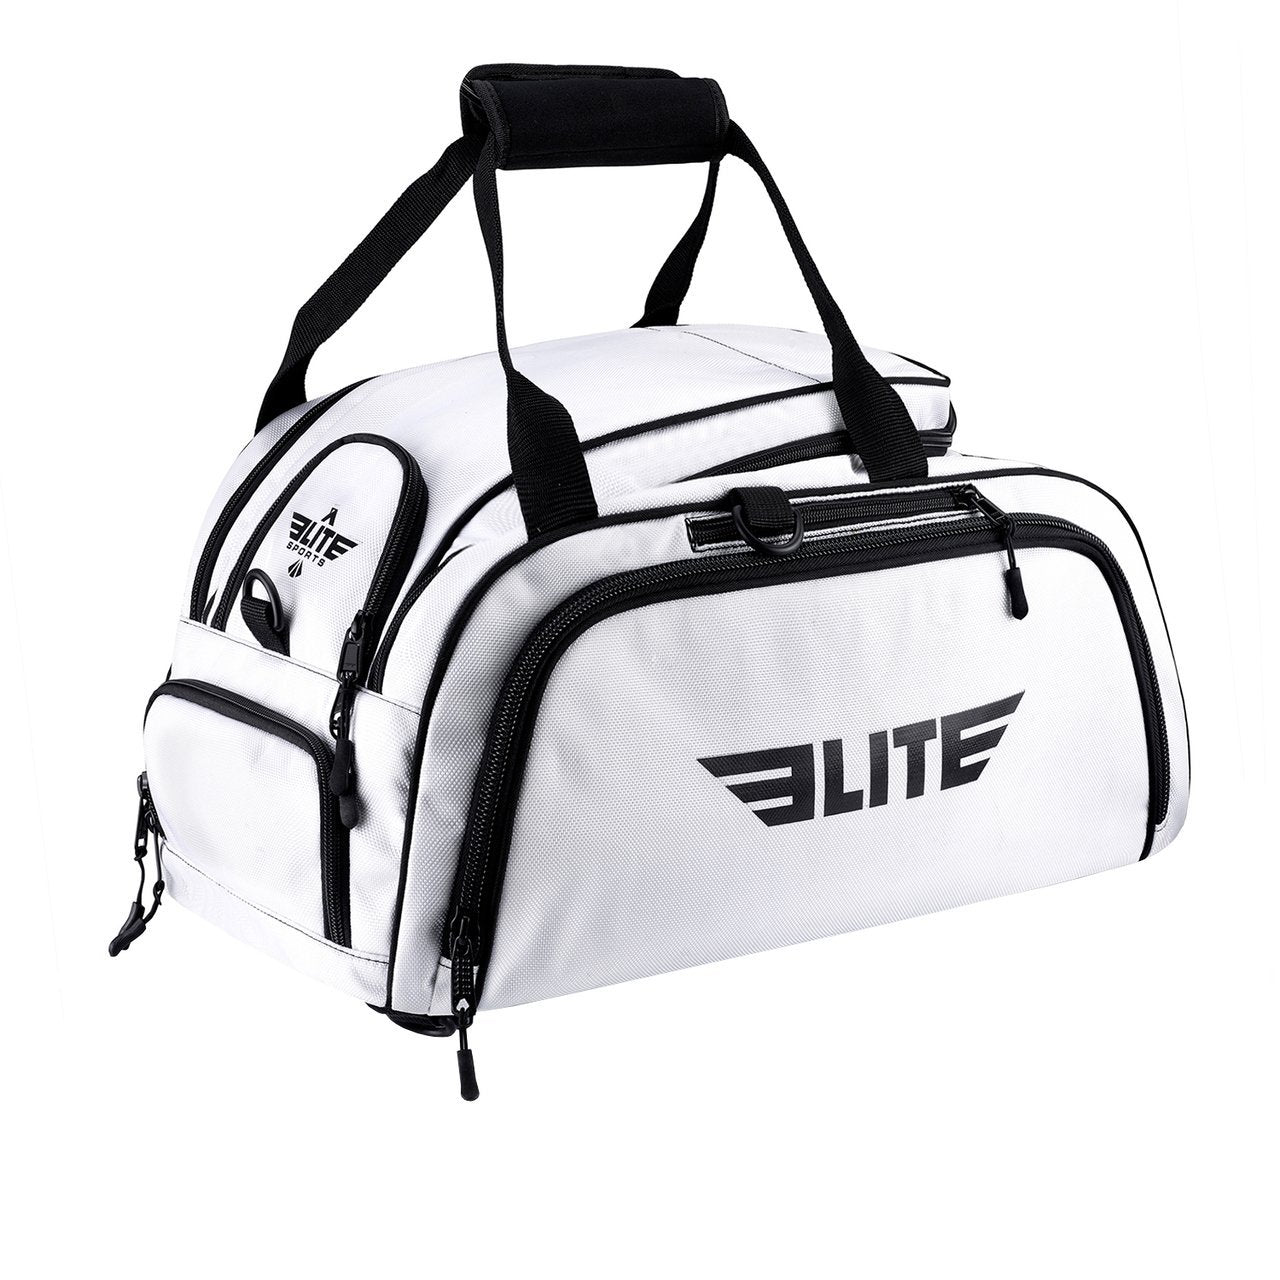 Load image into Gallery viewer, Elite Sports Warrior Series White Large Duffel Wrestling Gear Gym Bag & Backpack